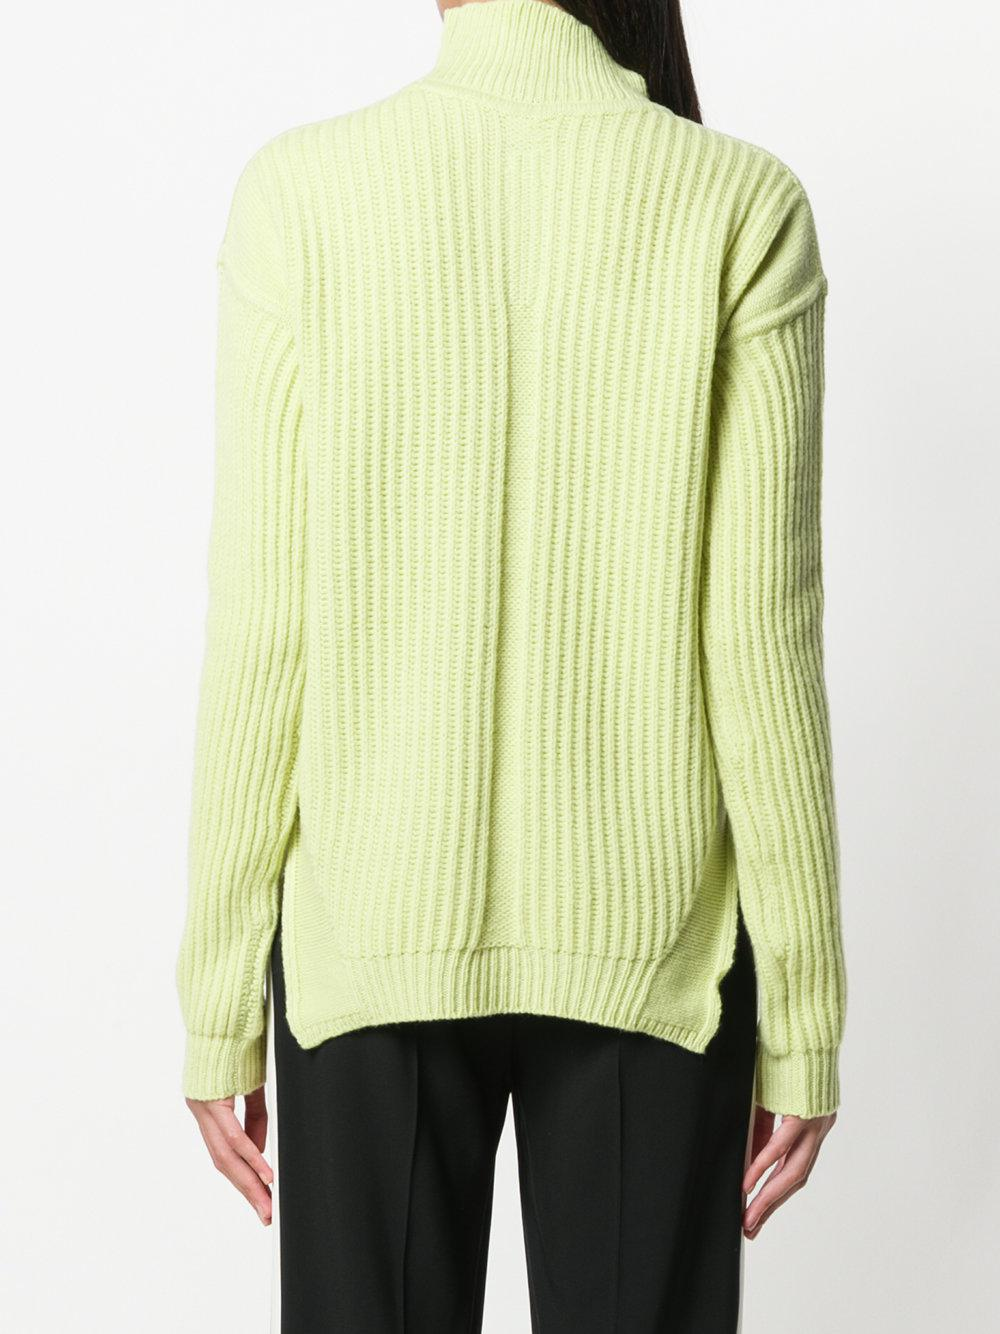 roll neck jumper - Green Rick Owens Best Seller Cheap Price Get The Latest Fashion Discount Codes Shopping Online Buy Cheap Shopping Online p6fdVTvl